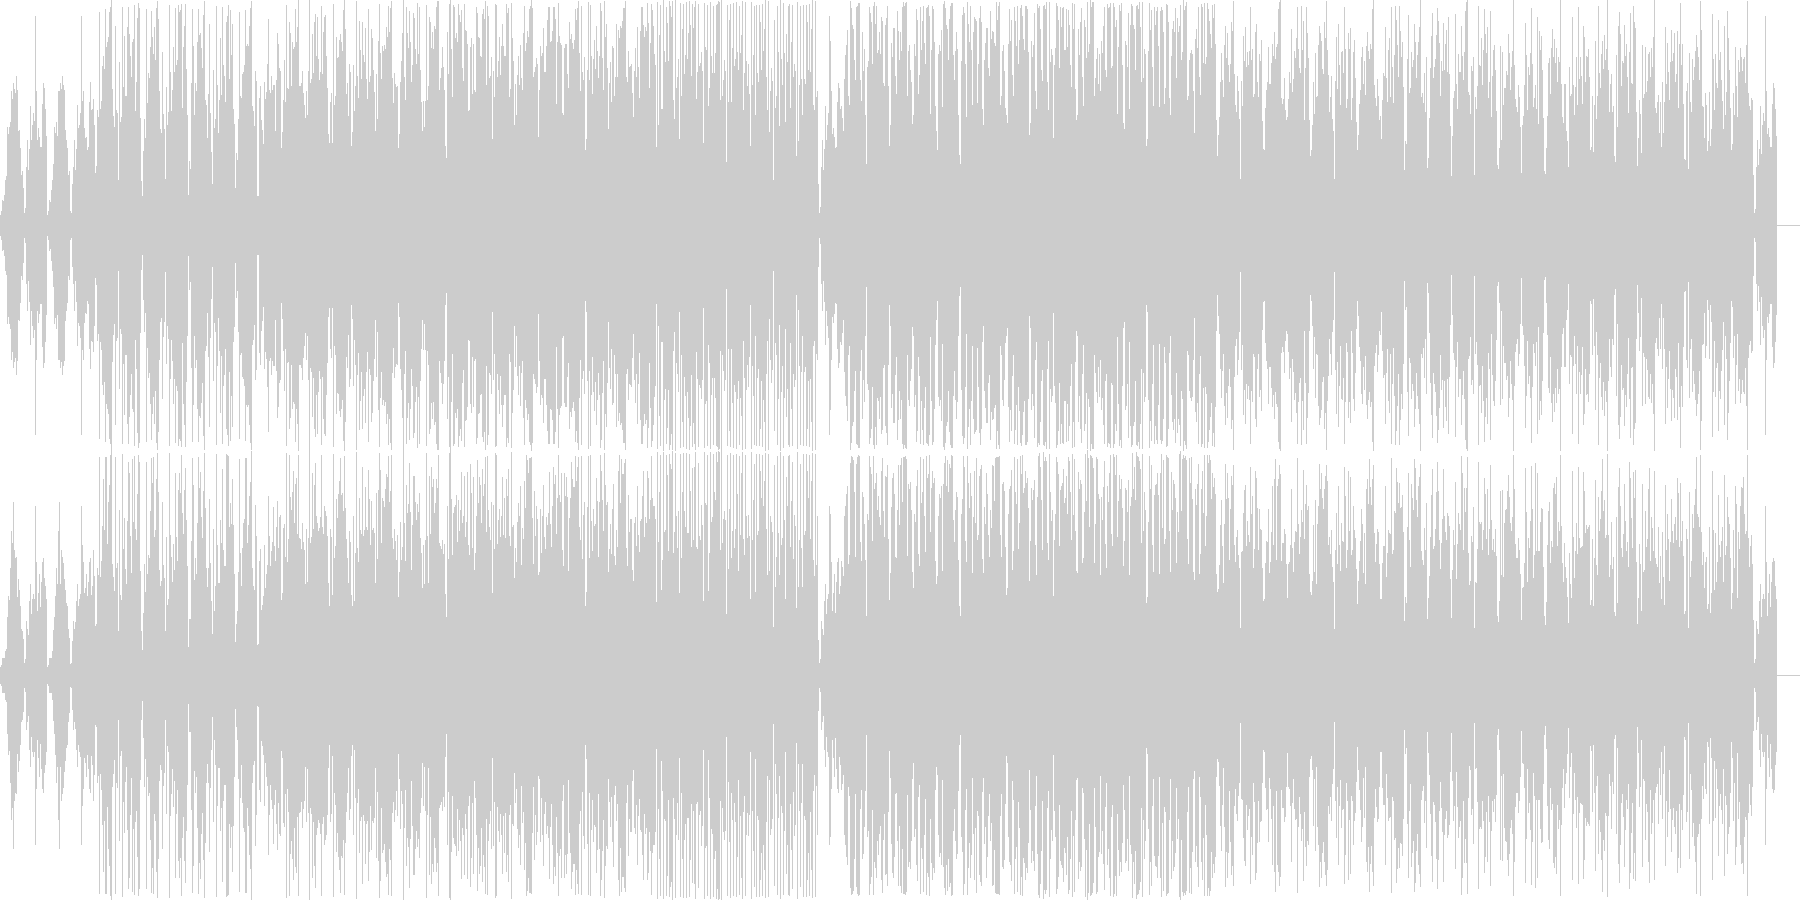 House music with a mysterious atmosphere's unreproduced waveform